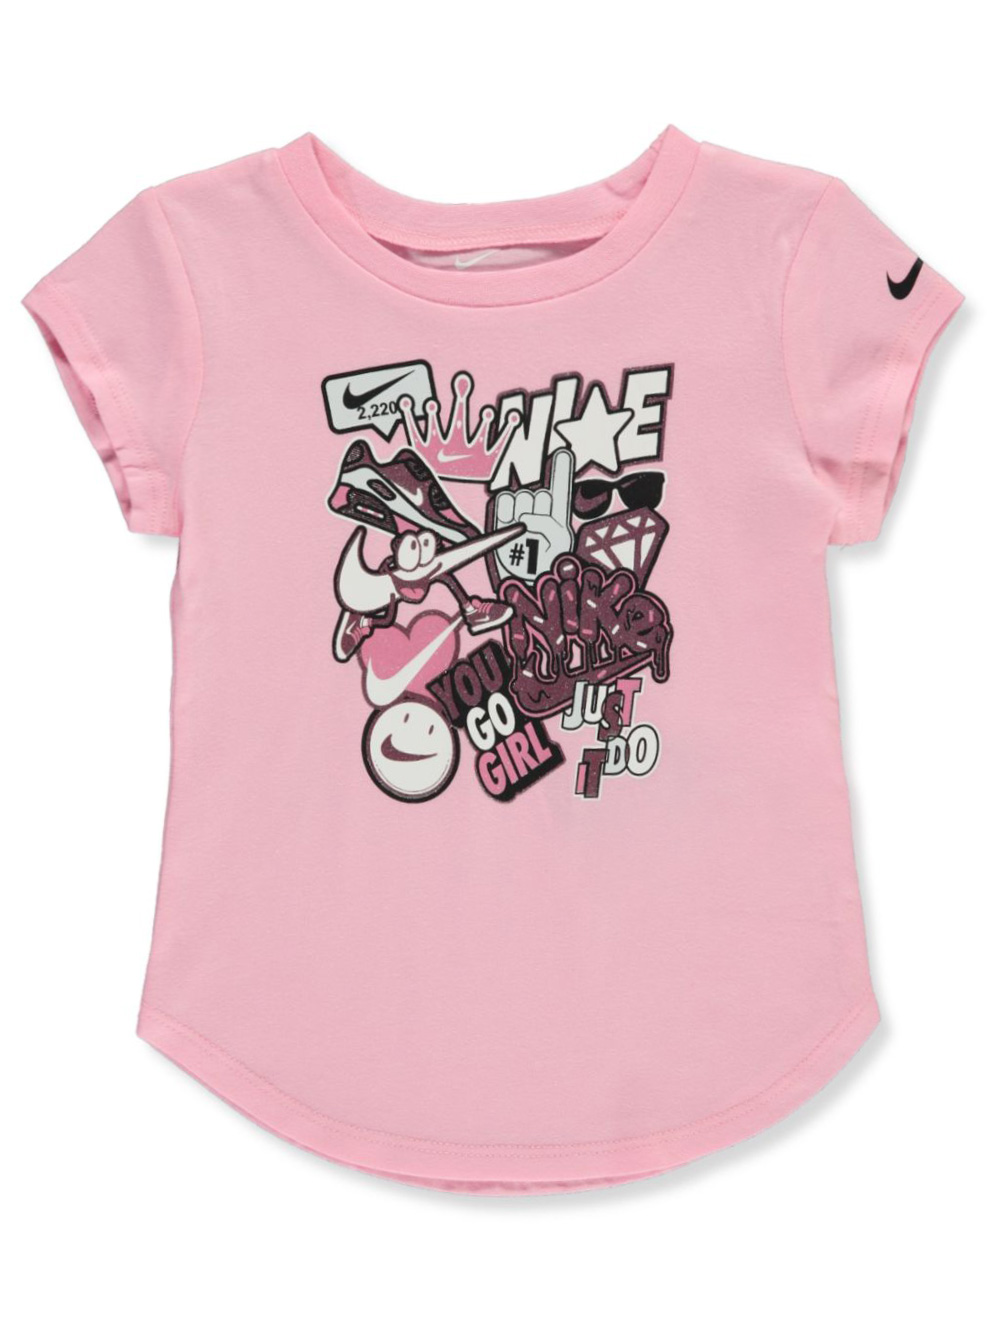 Girls' Athletic Top